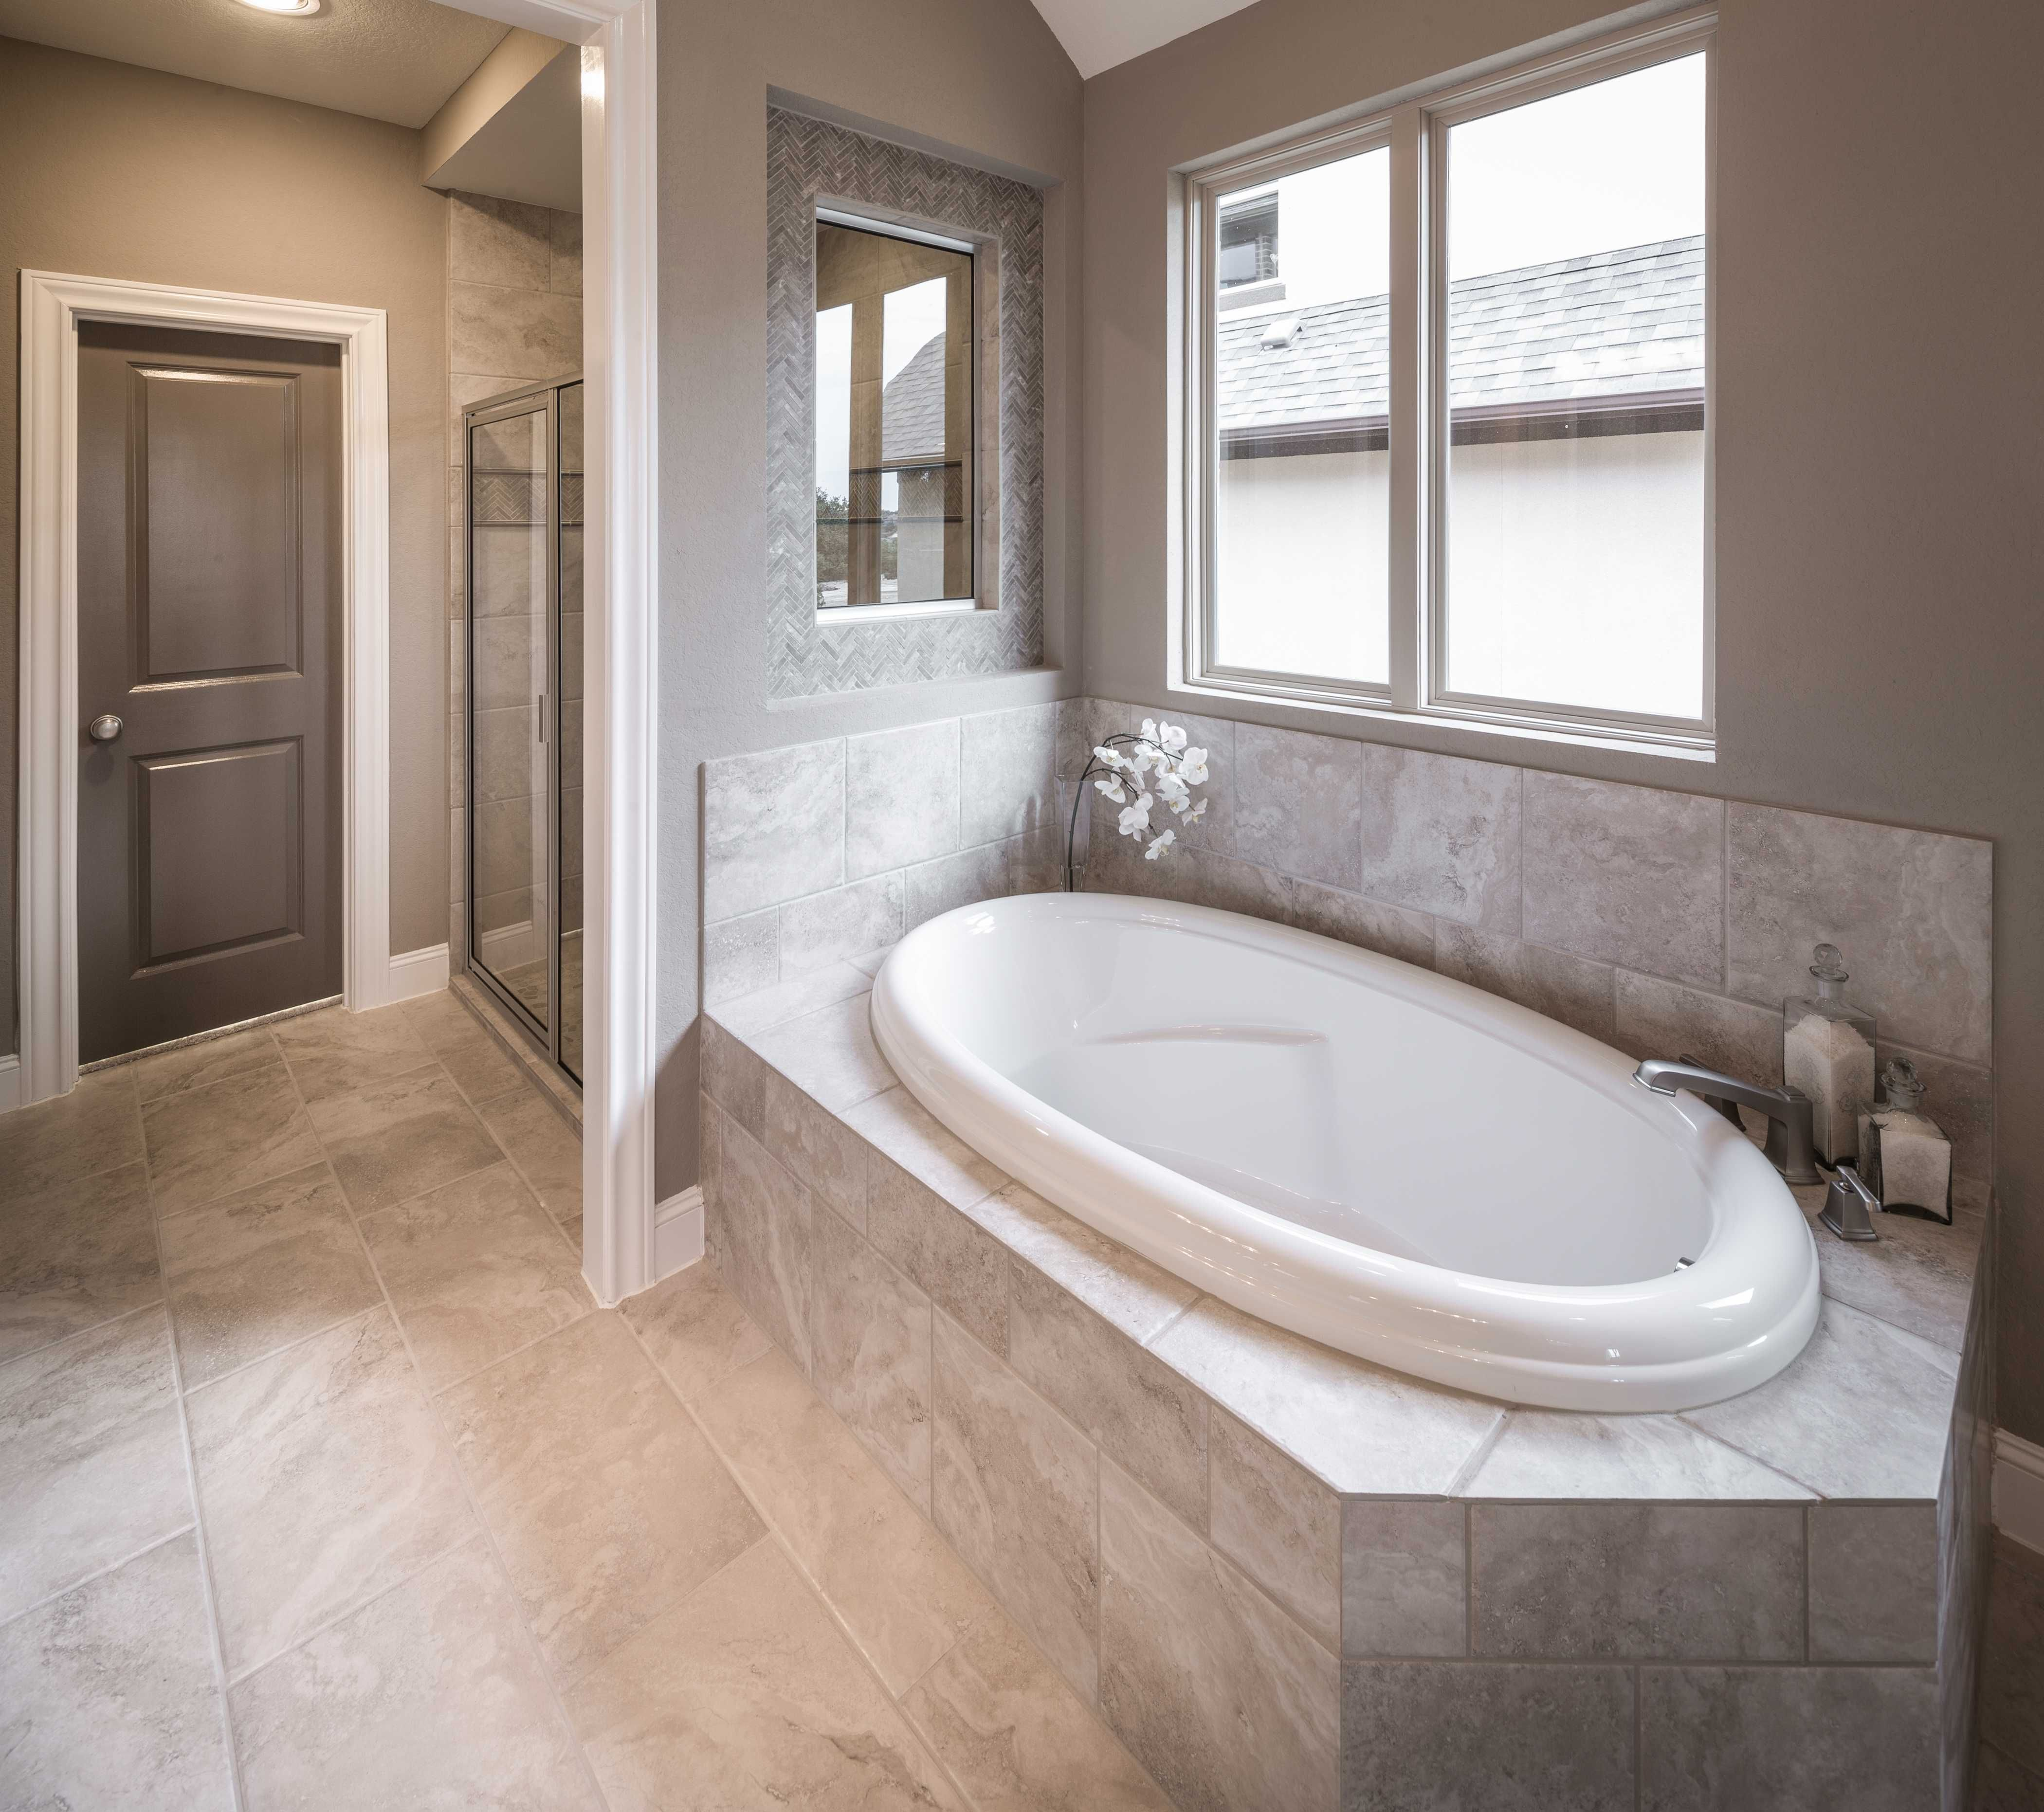 master bathroom in highland homes 539 plan at 23329 emerald pass rh pinterest com